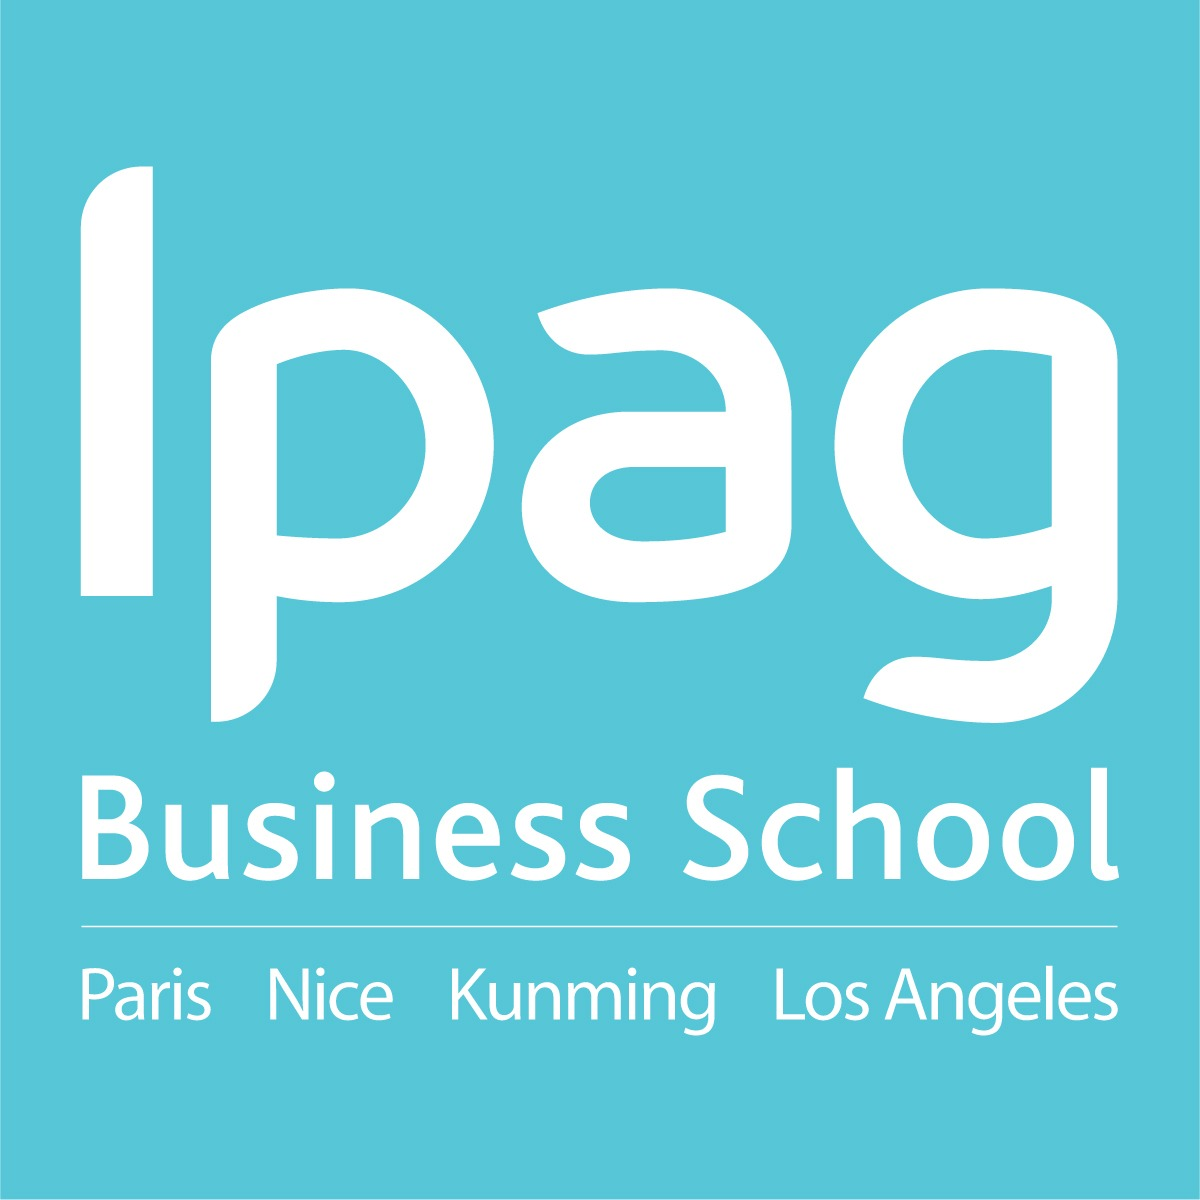 the IPAG Business School logo.